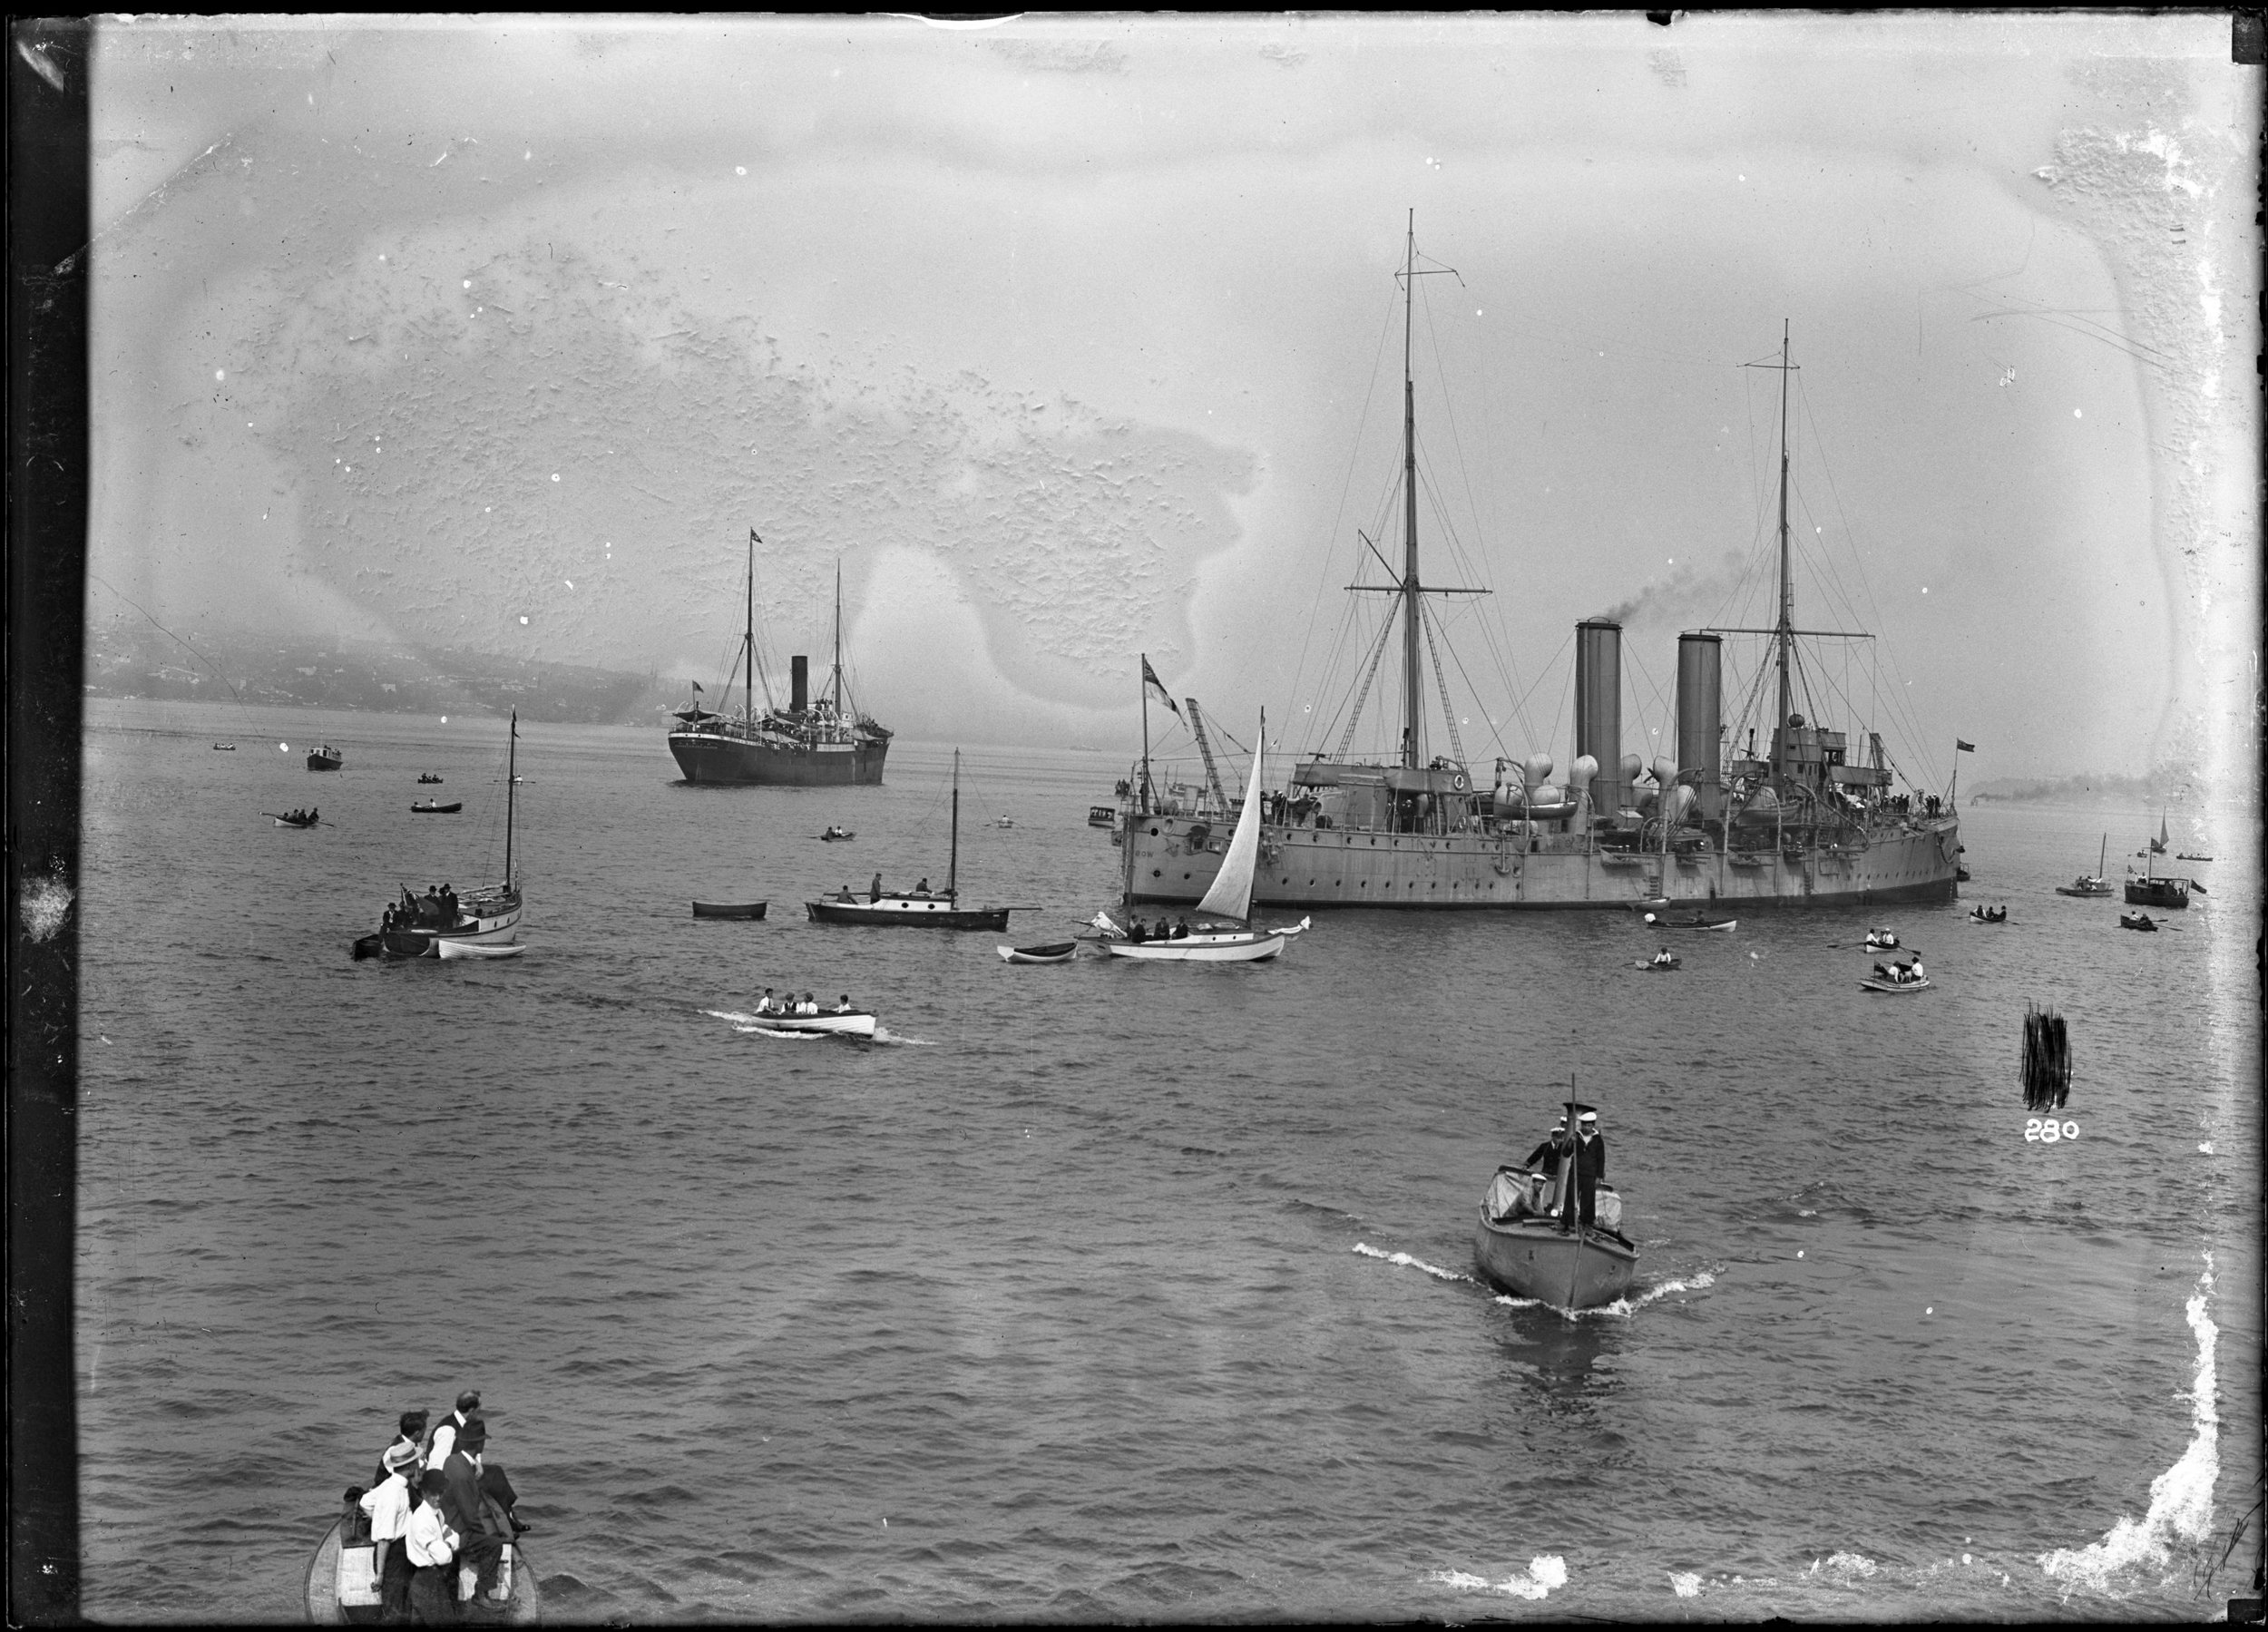 The Komagata Maru and Leisure Boats in Vancouver Harbour, 1914. Source: Vancouver Public Library